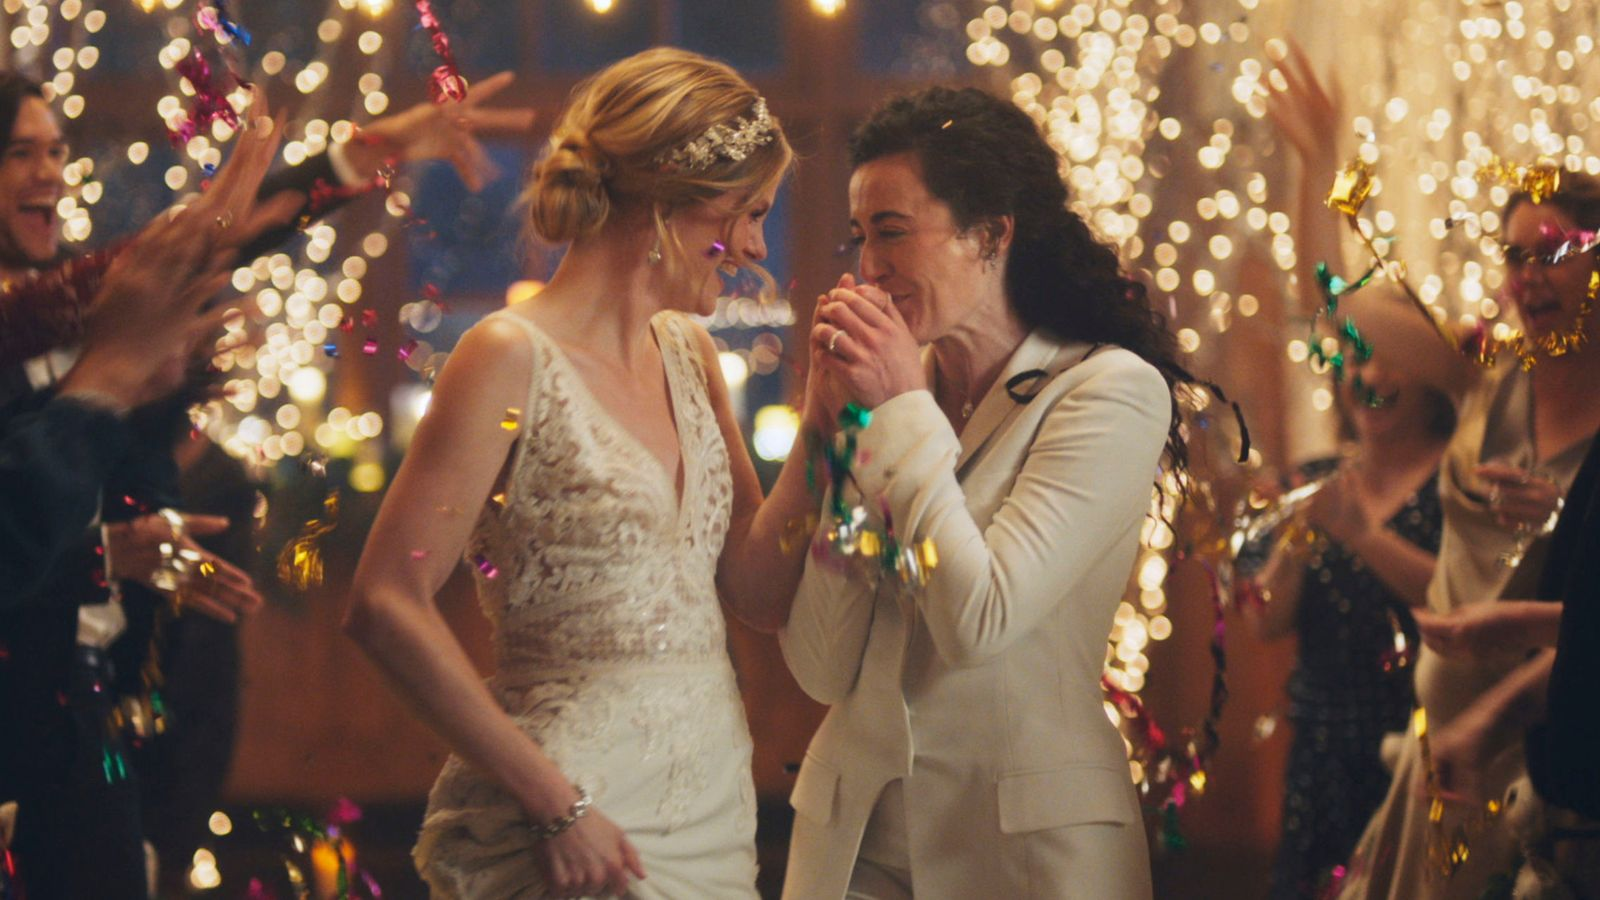 Hallmark reverses 'wrong decision' to pull same-sex marriage ads - EpicNews